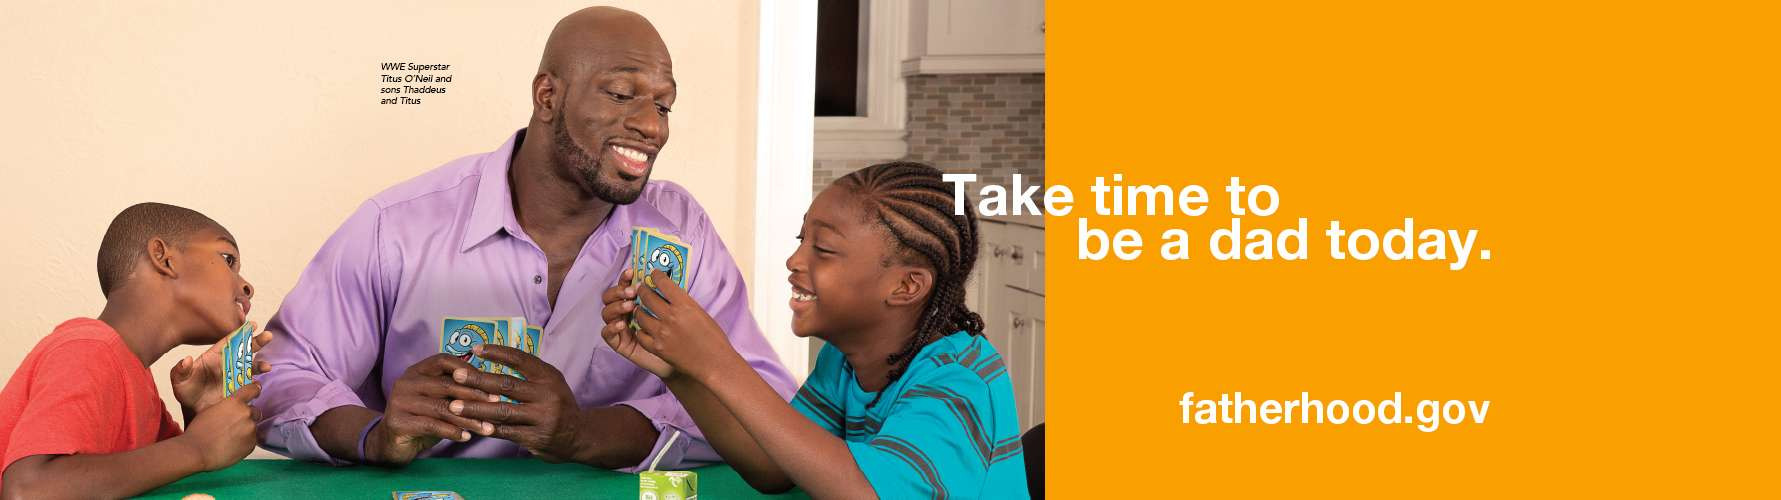 "Guys' Night out Facebook Cover with WWE Superstar Titus O'Neil and sons playing cards: ""Take time to be a dad today."" –fatherhood.gov"